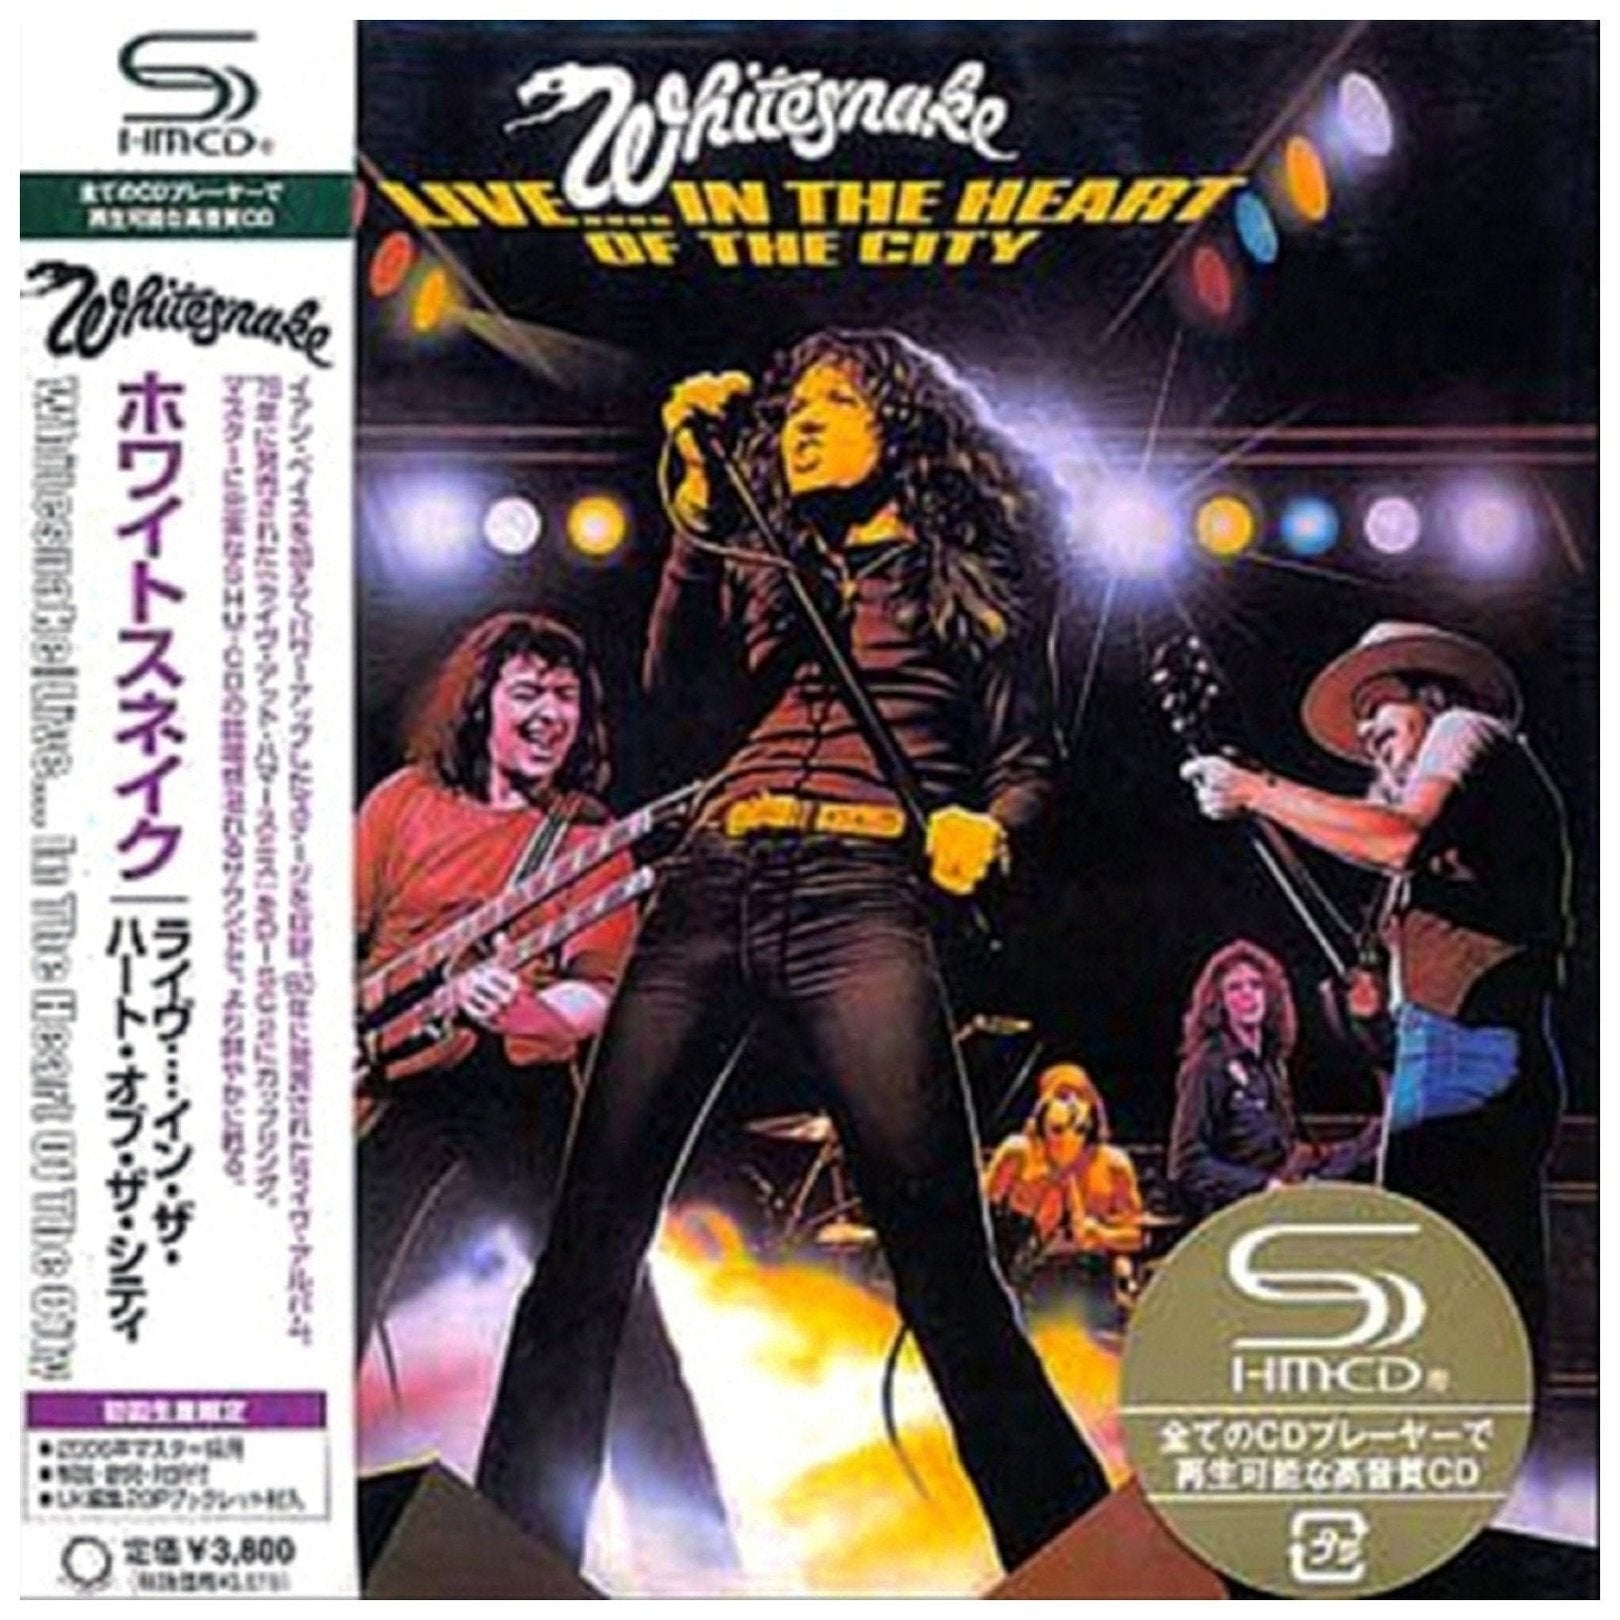 Whitesnake - Whitesnake - Live In The Heart Of The City - Japan Mini Lp Shm - Uicy-93740/1 - 2 Cd